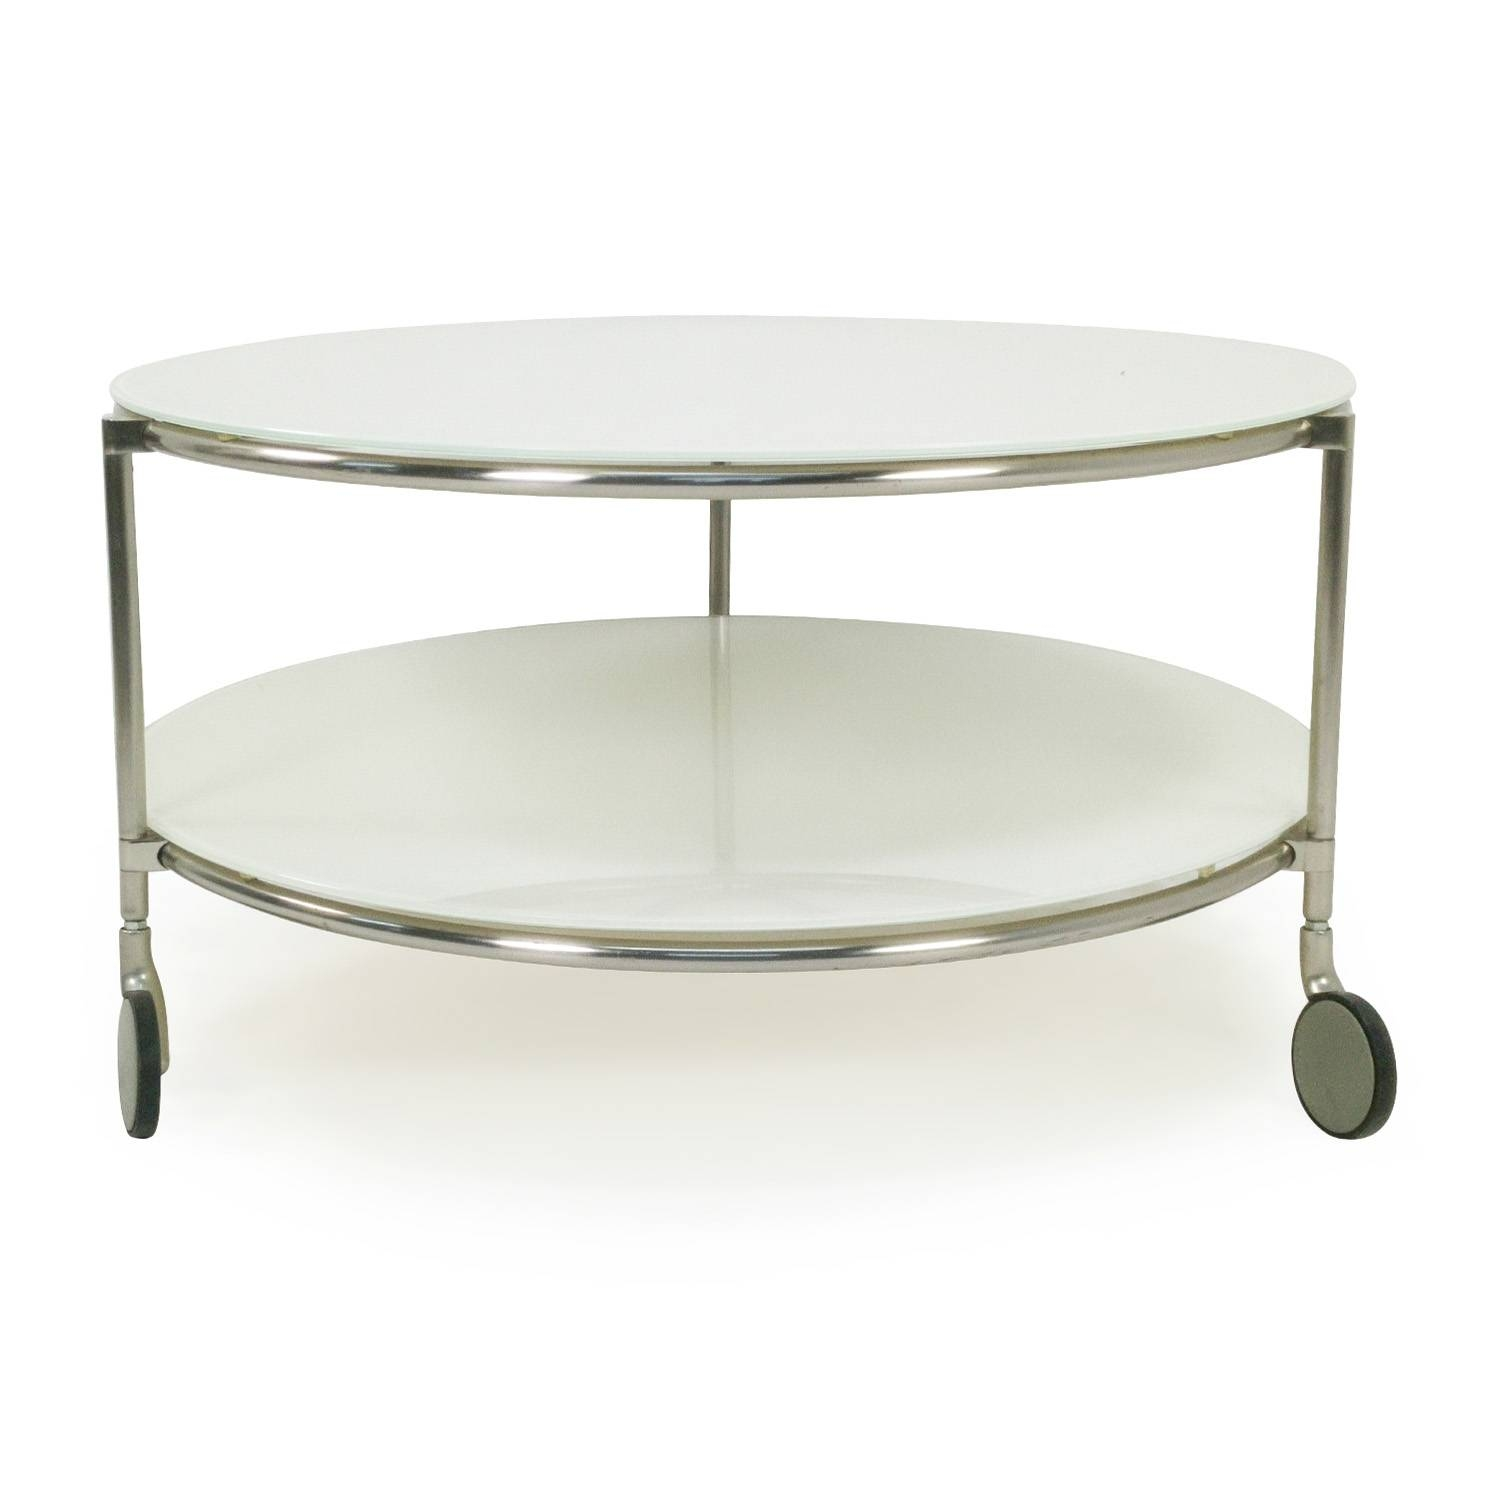 82% Off - Ikea String Coffee Table With Casters / Tables regarding Glass Coffee Tables With Casters (Image 1 of 30)